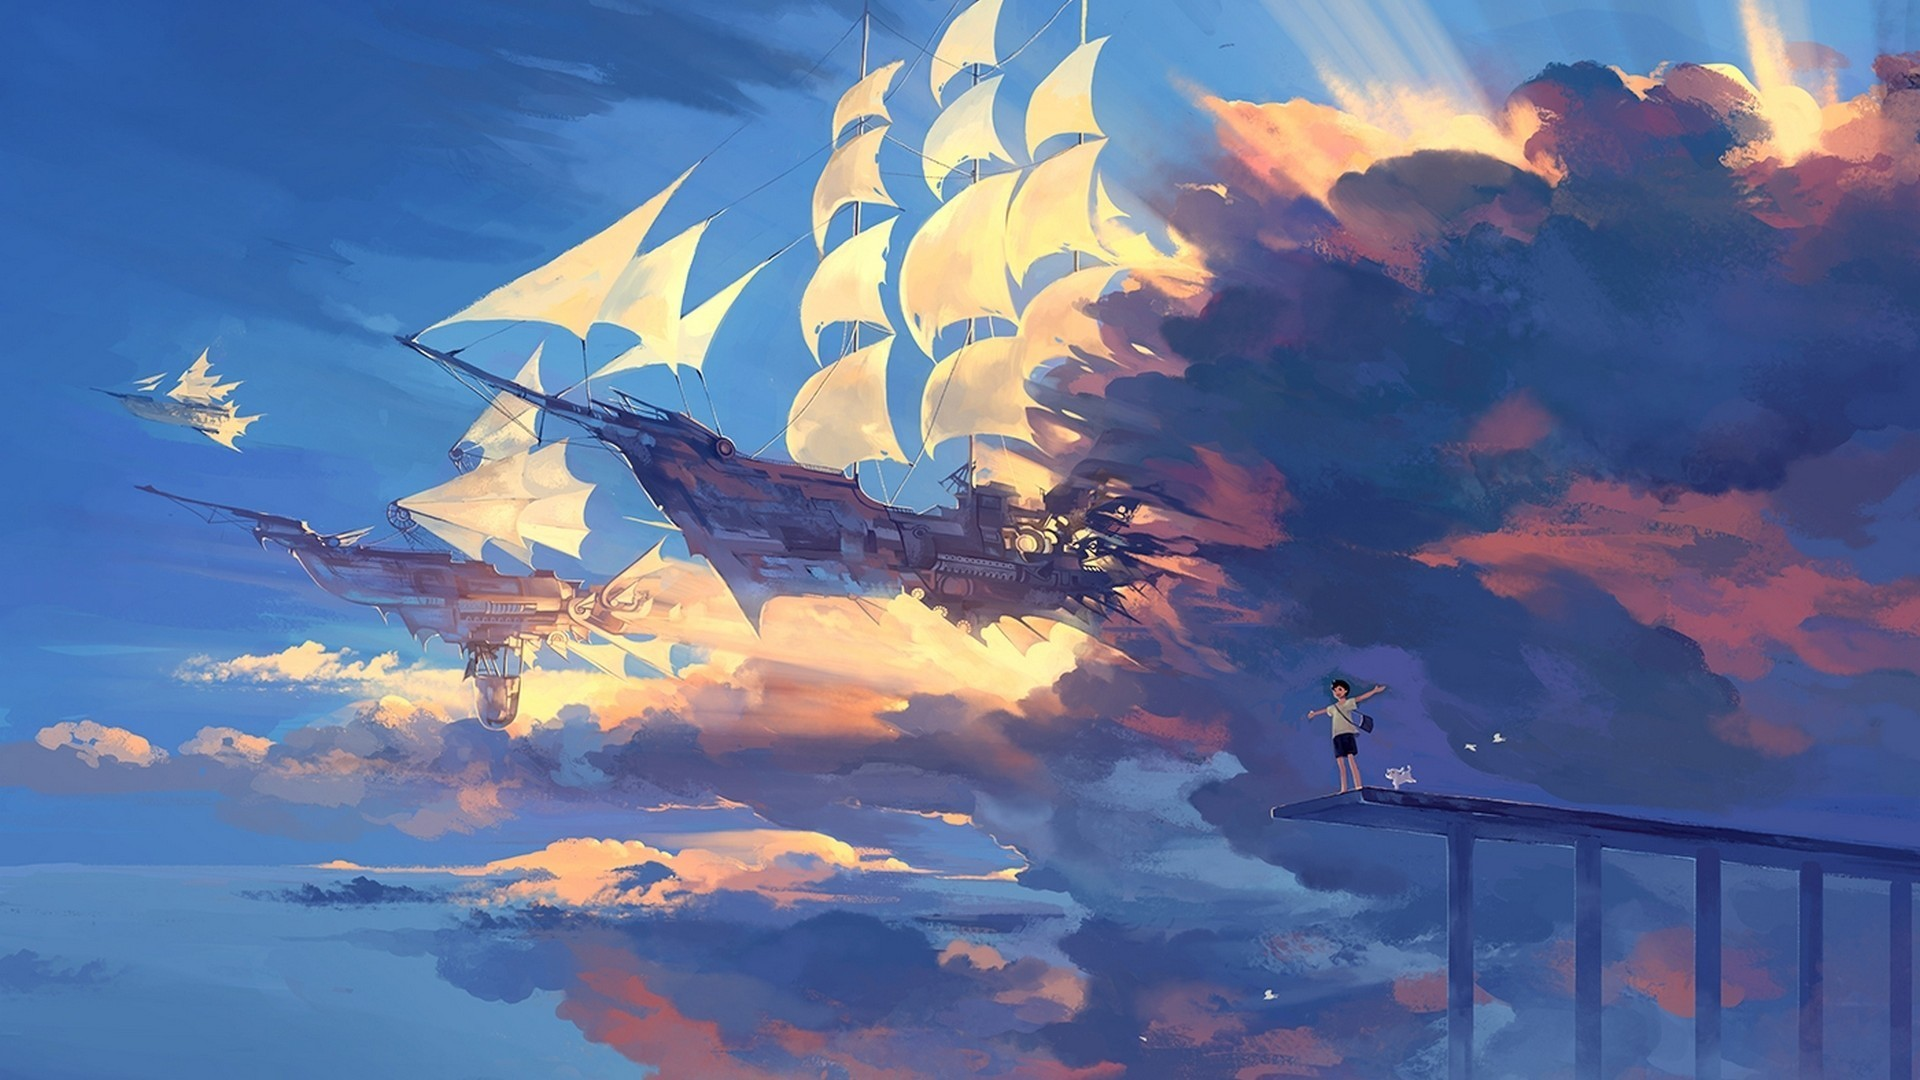 Res: 1920x1080, hanyijie sky scenery ship anime art 1920×1080 hd wallpapers cool images  free amazing desktop wallpapers mac desktop images 1080p display 1920×1080  Wallpaper ...